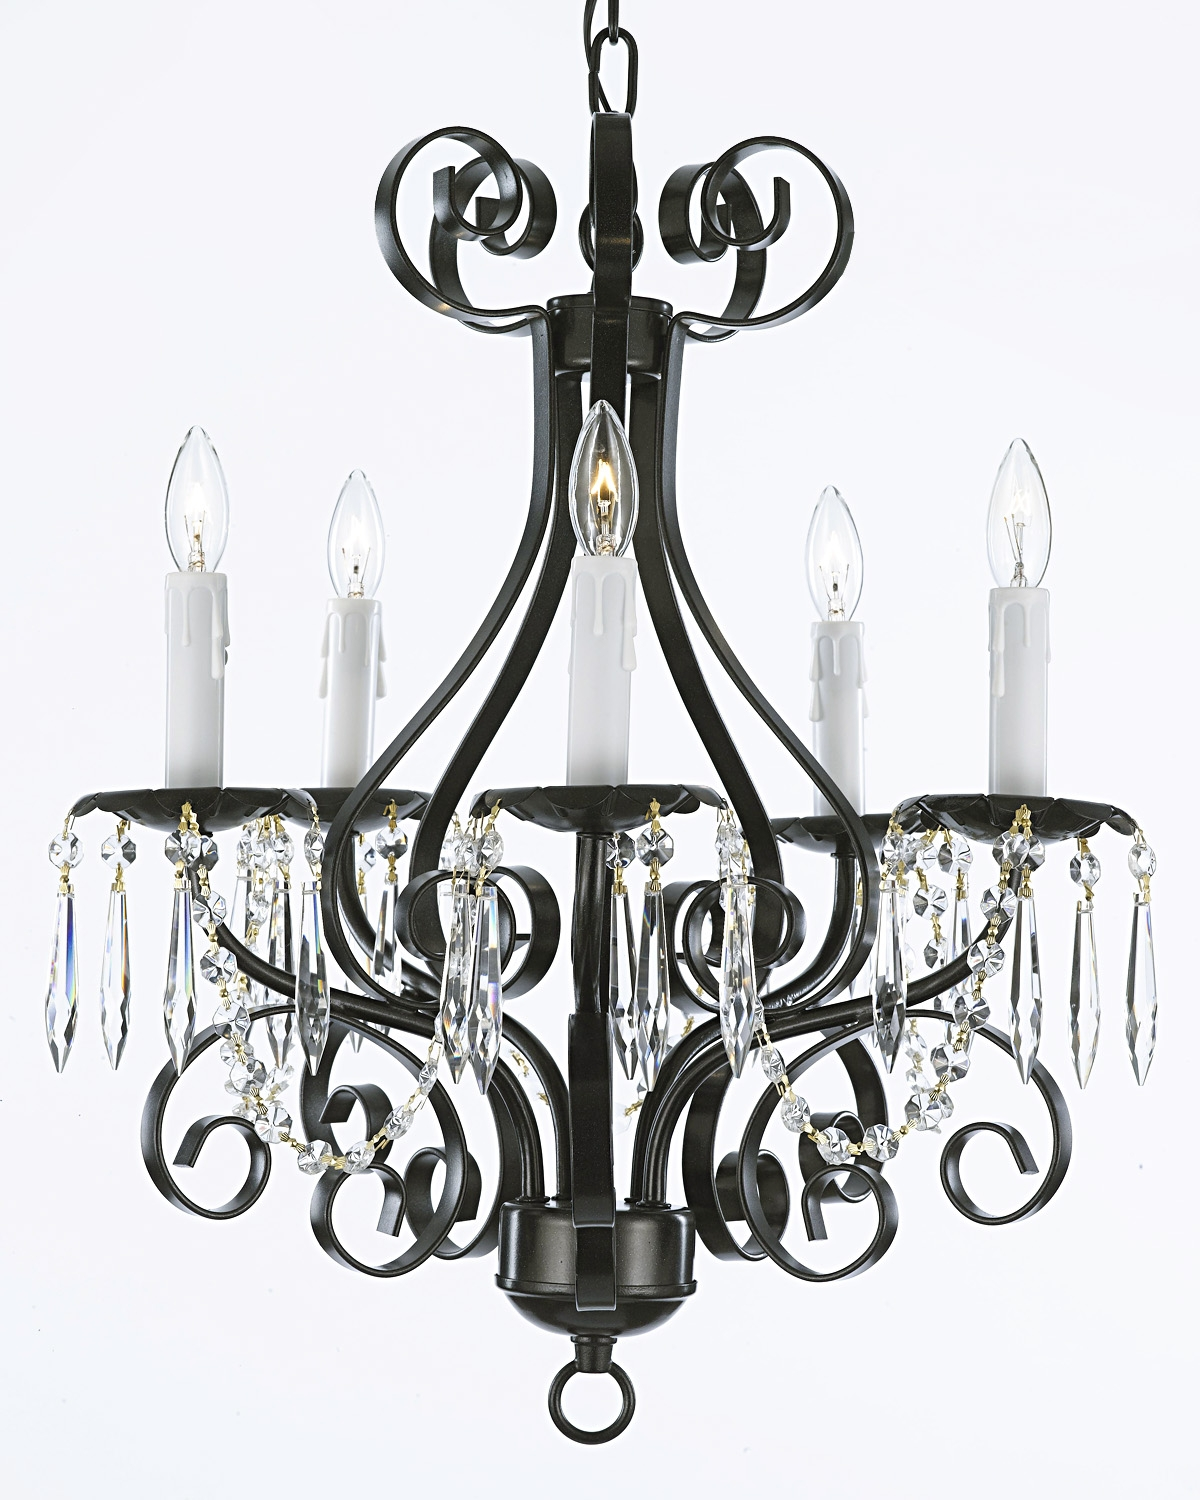 Gallery Regarding French Chandeliers (Image 14 of 15)